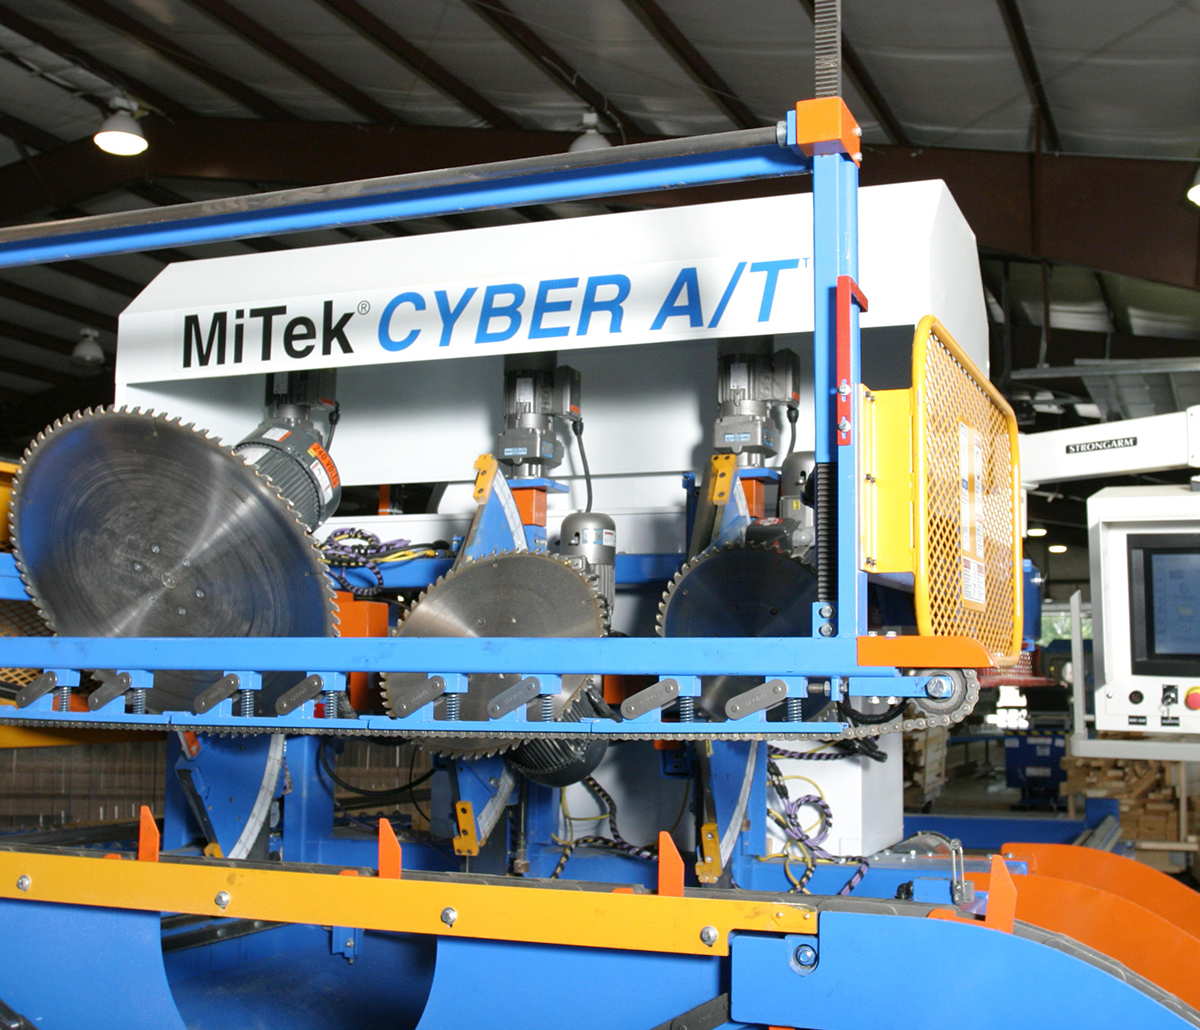 MiTek Cyber A/T Automated Solution Solutions - Cyber A/T saw in a factory